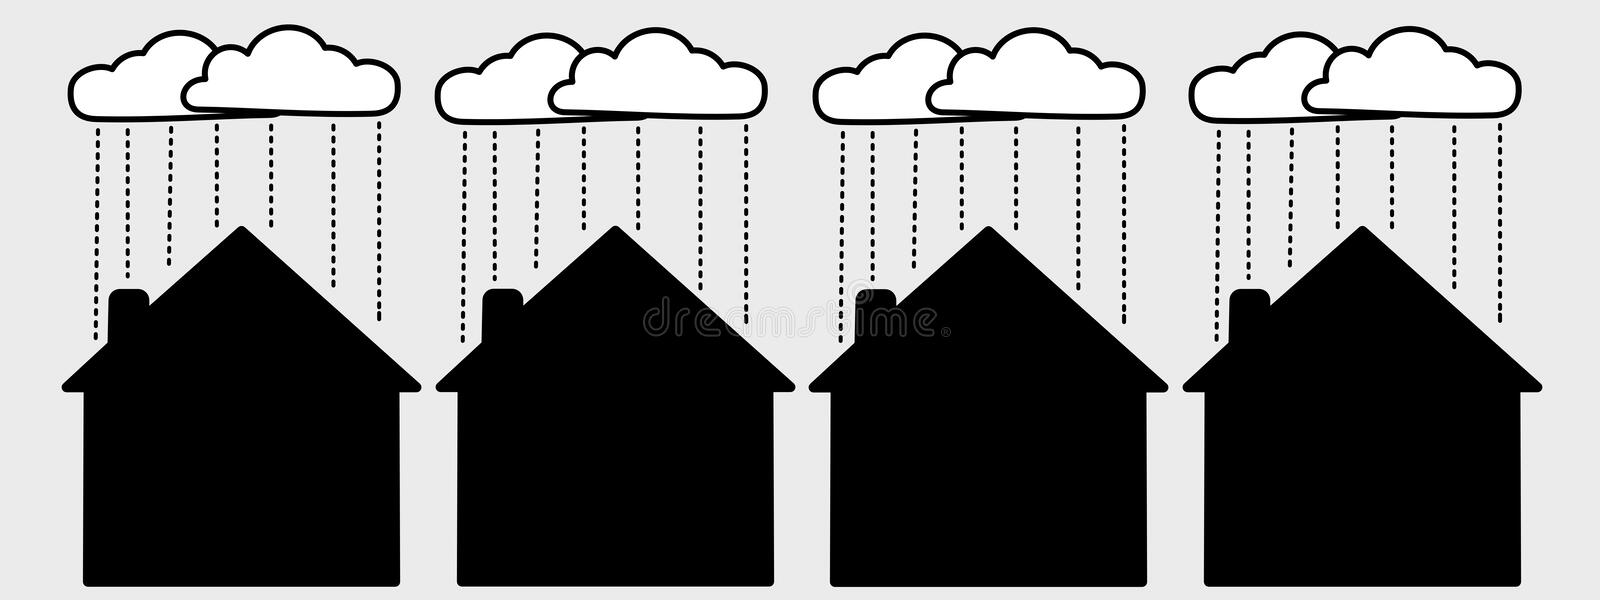 Download Unhappy homes stock illustration. Illustration of background - 7630153